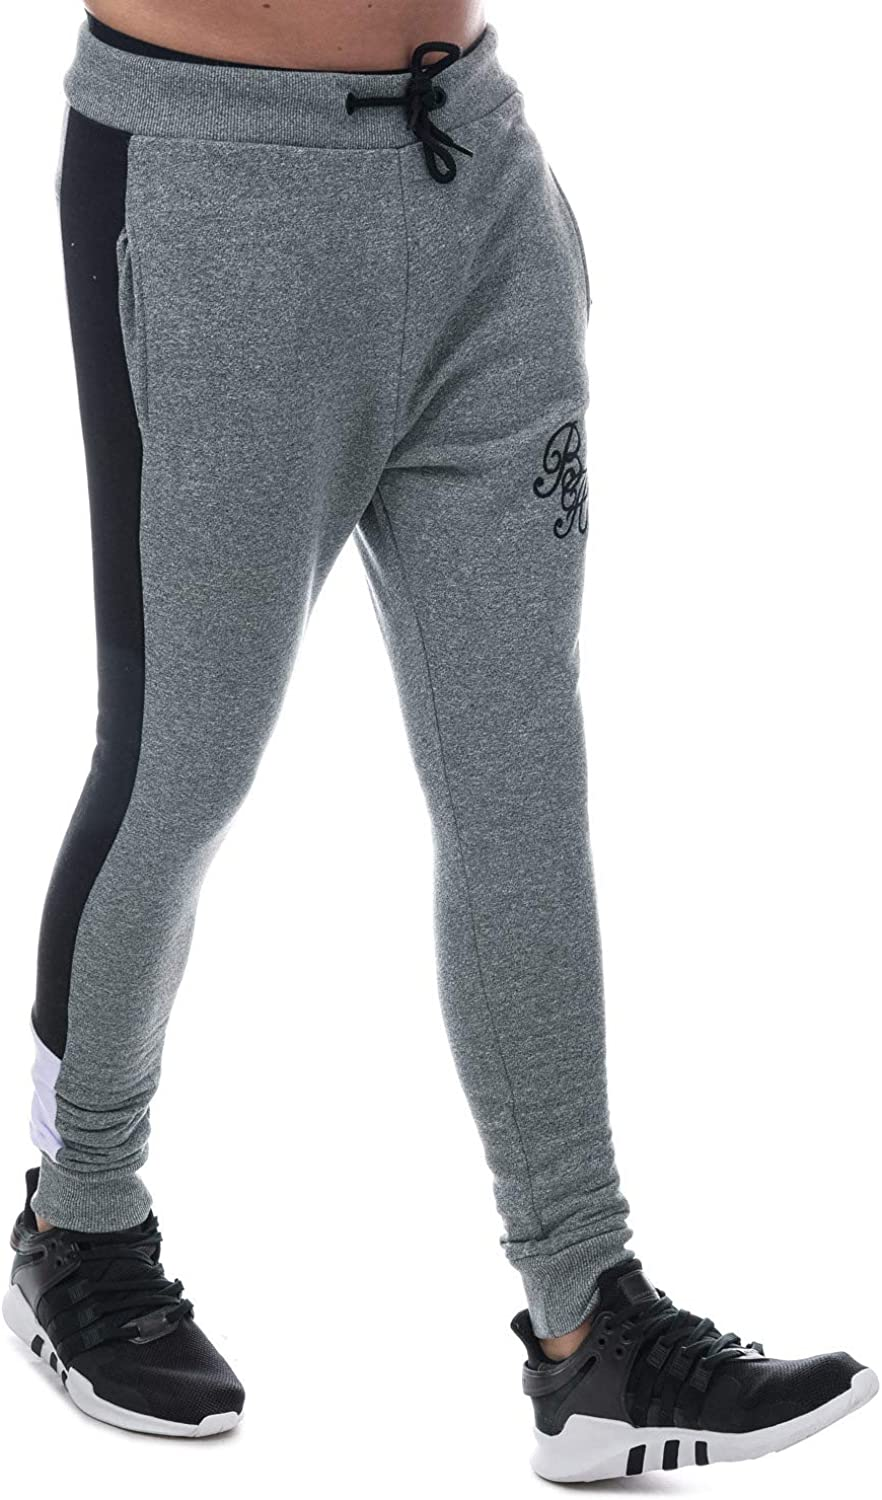 Mens Beck and Hersey Janus Jog Pants in Grey External Ribbed Waist and Cuffs